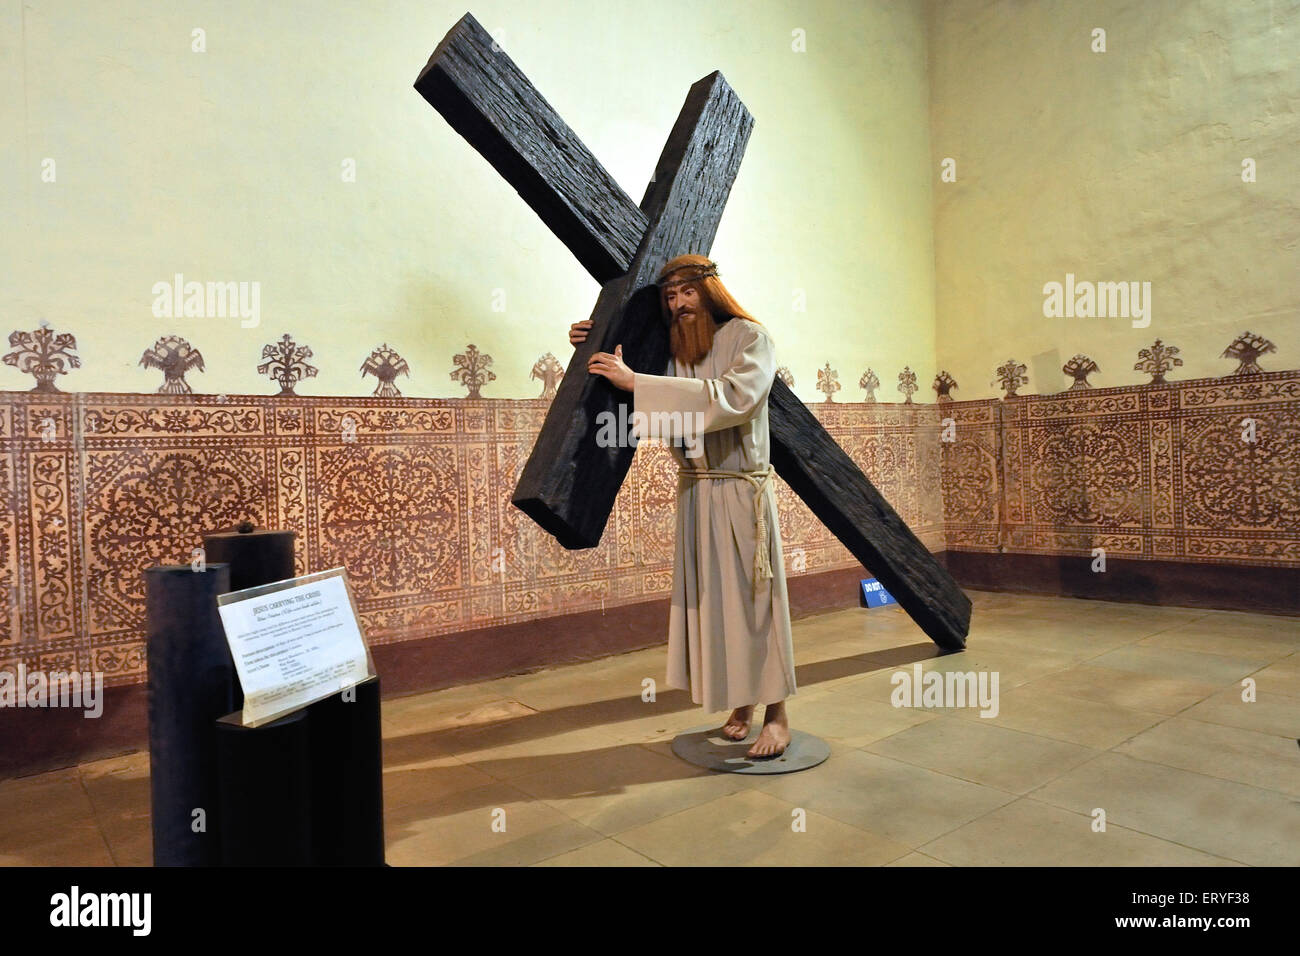 jesus carrying cross statue in archipiscopal palace in old goa